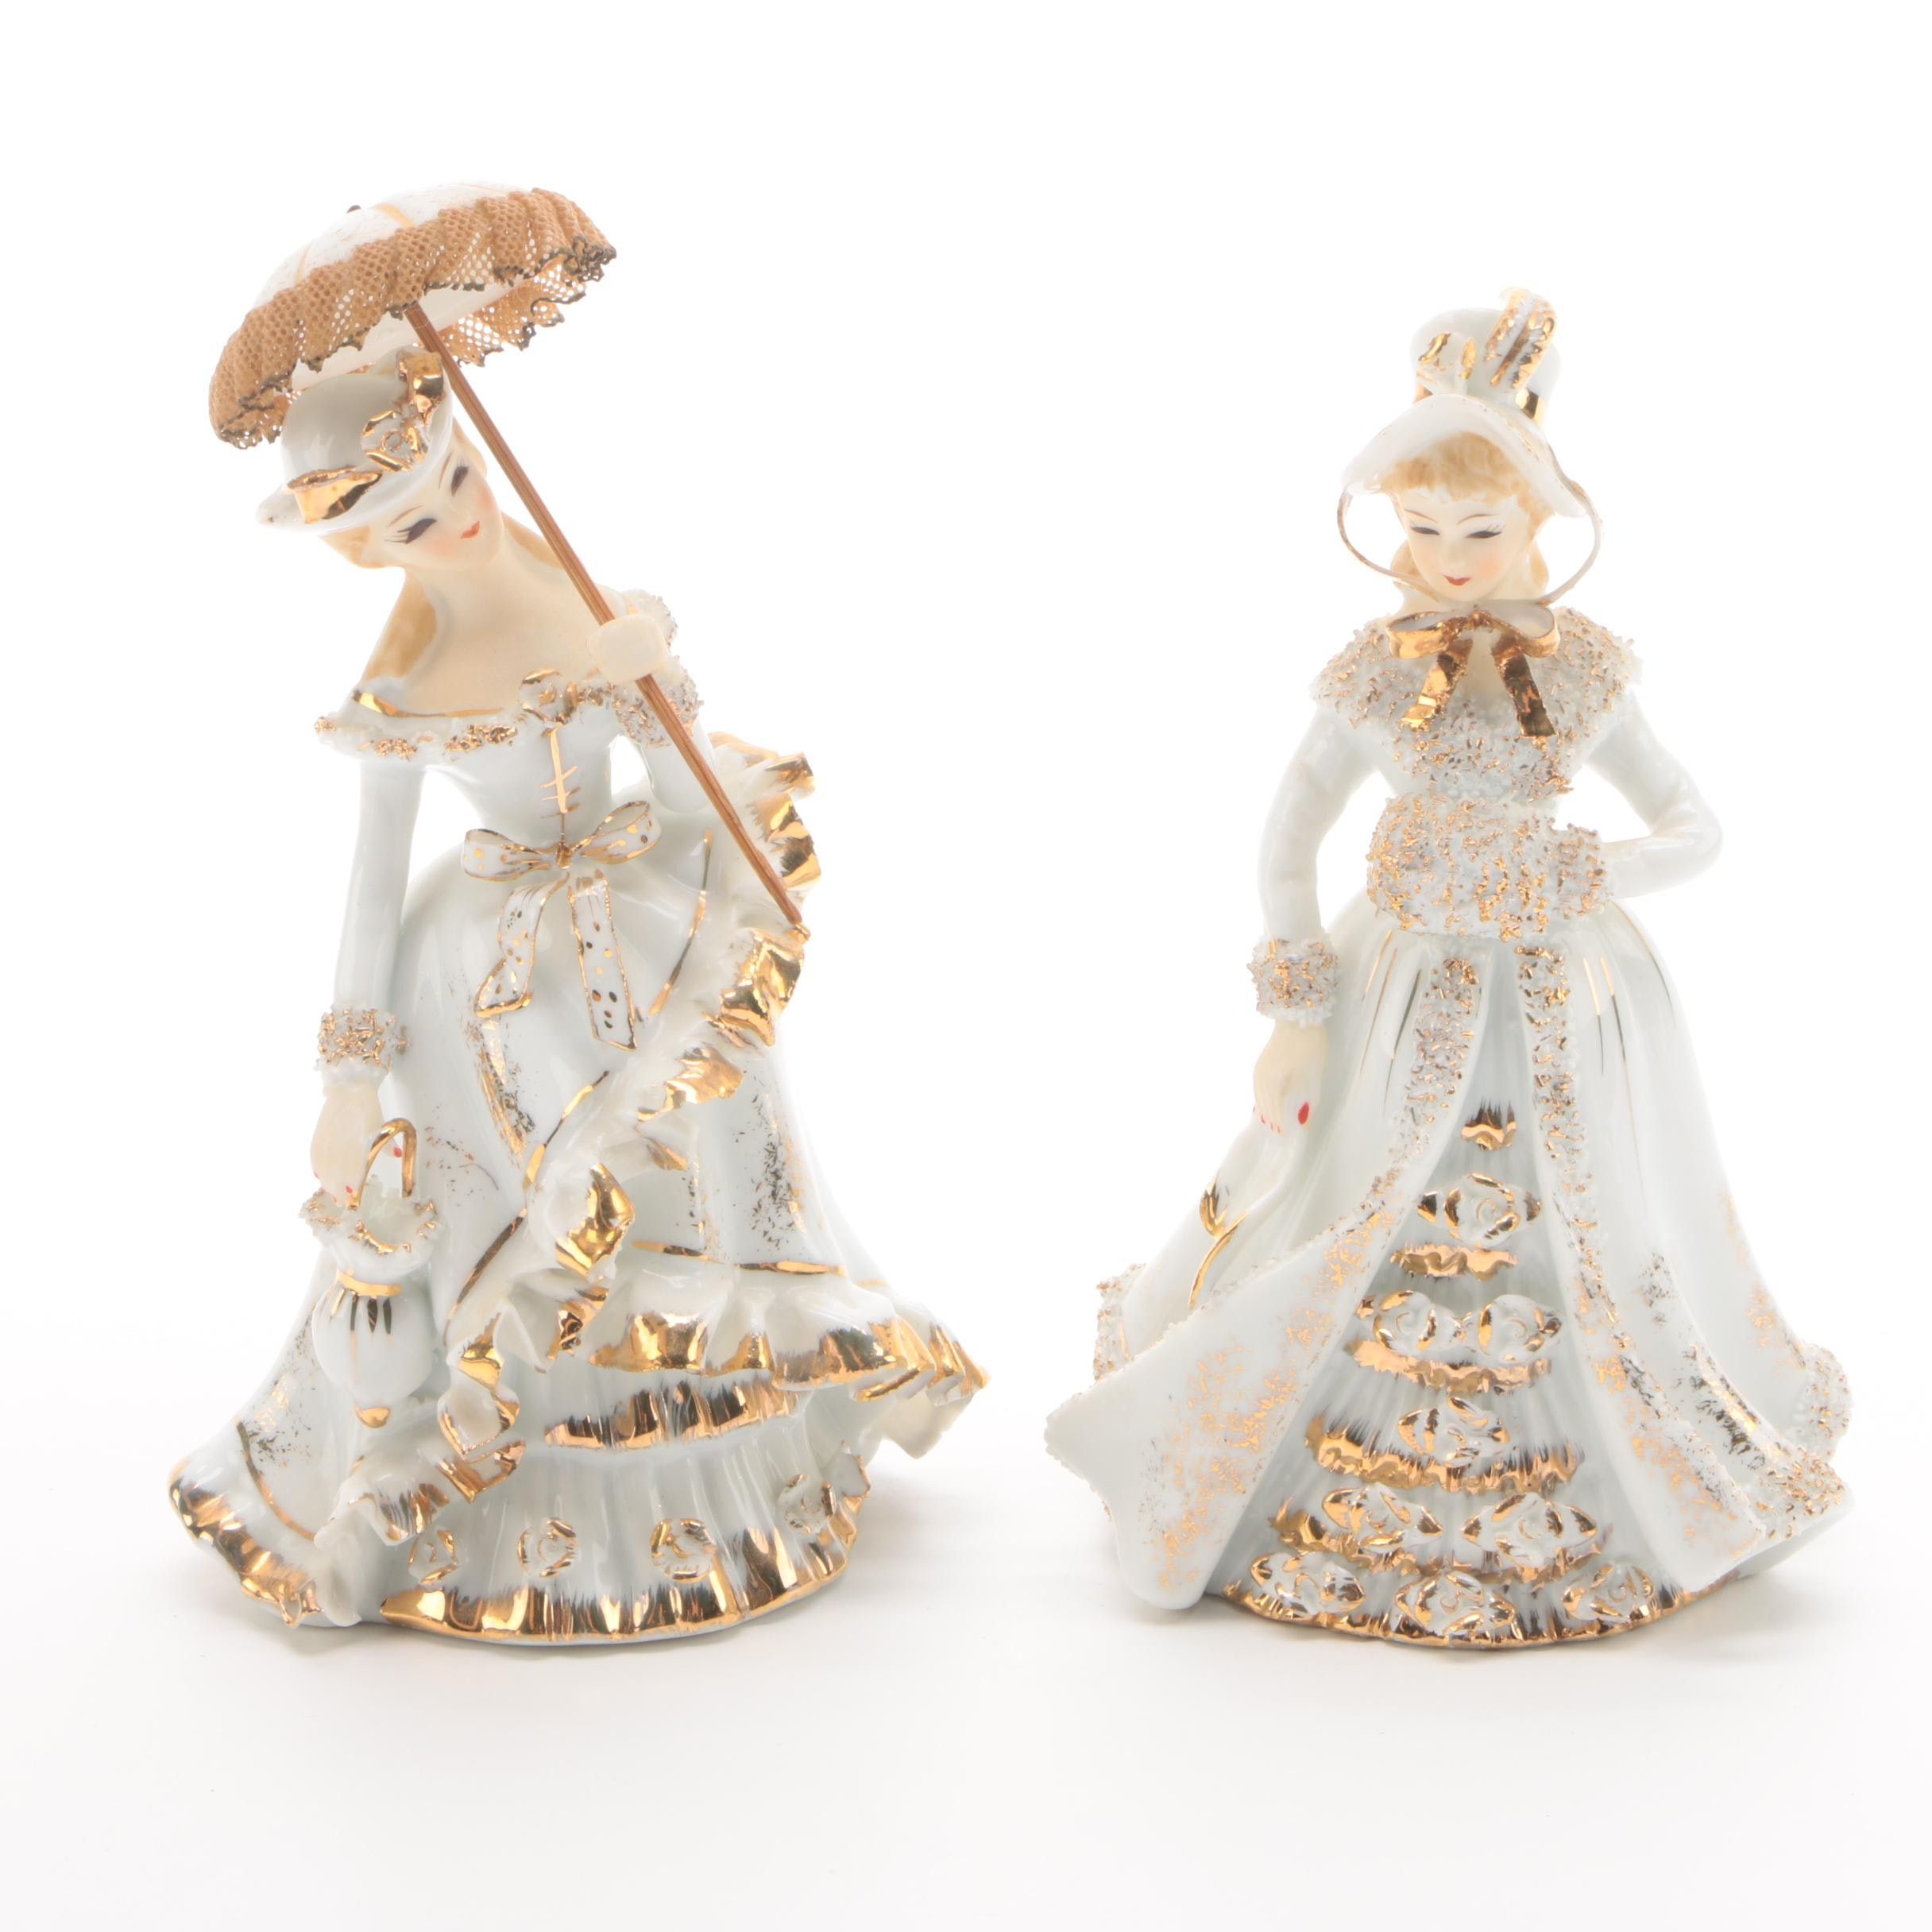 Lefton China Hand-Painted Porcelain Figurines